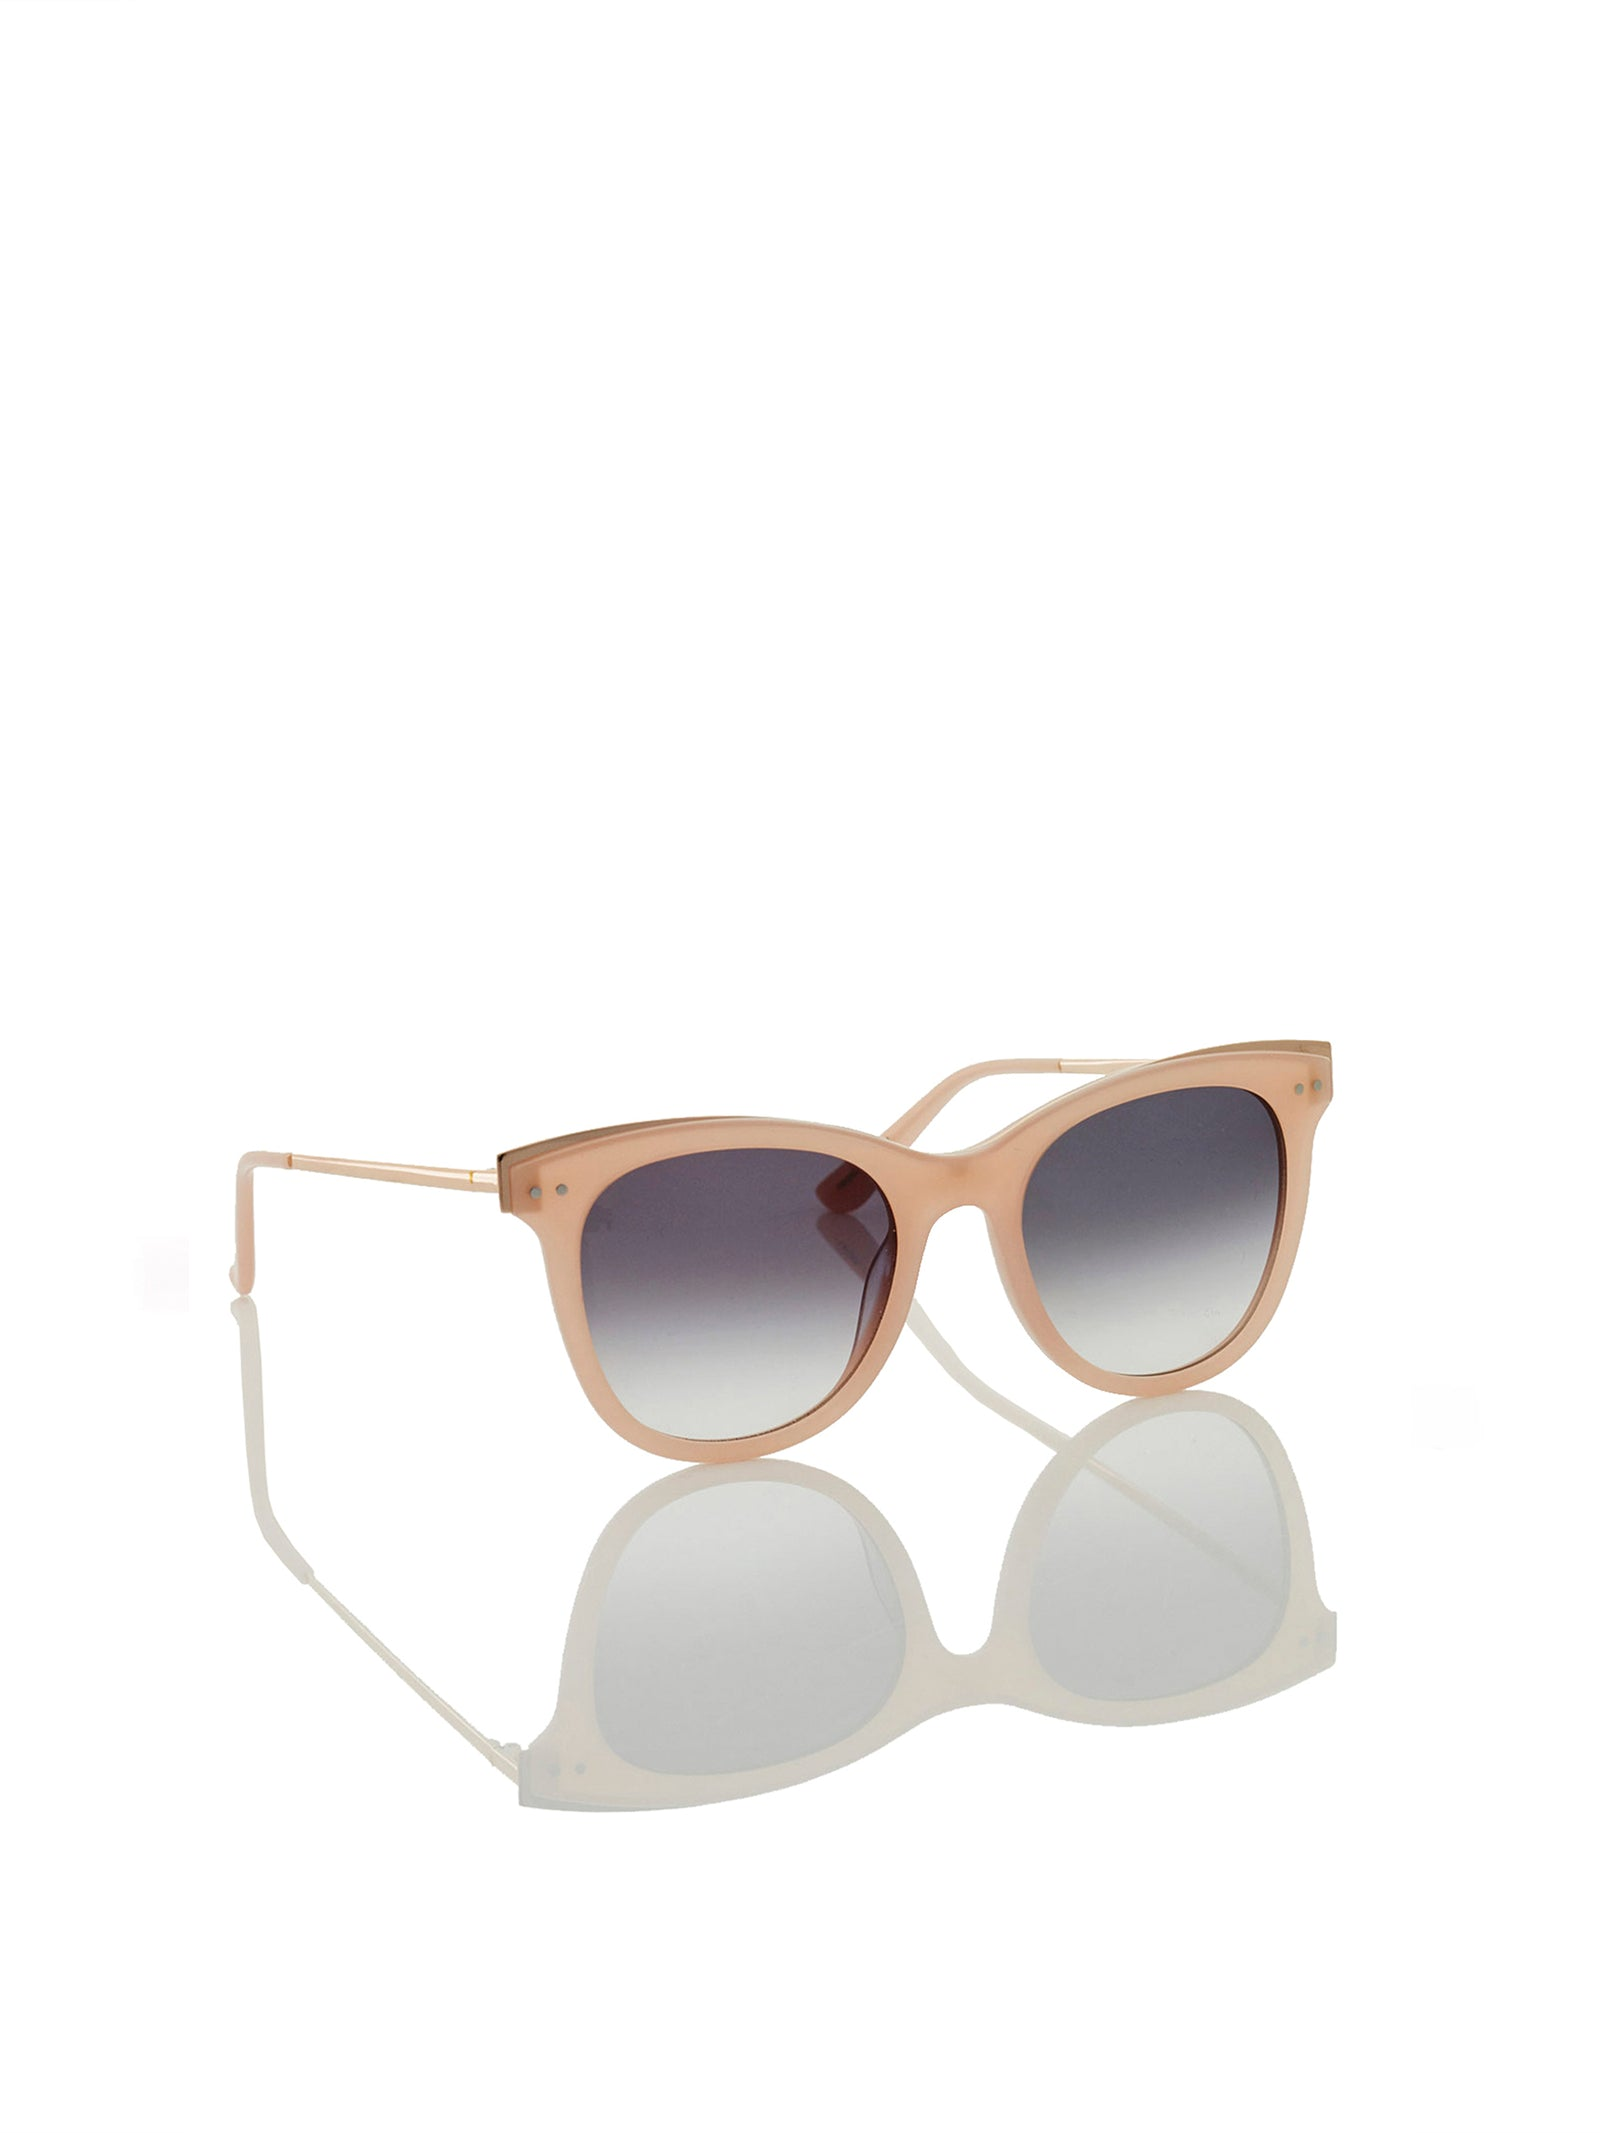 JH Eyewear No. 06 (acetate) petal gold